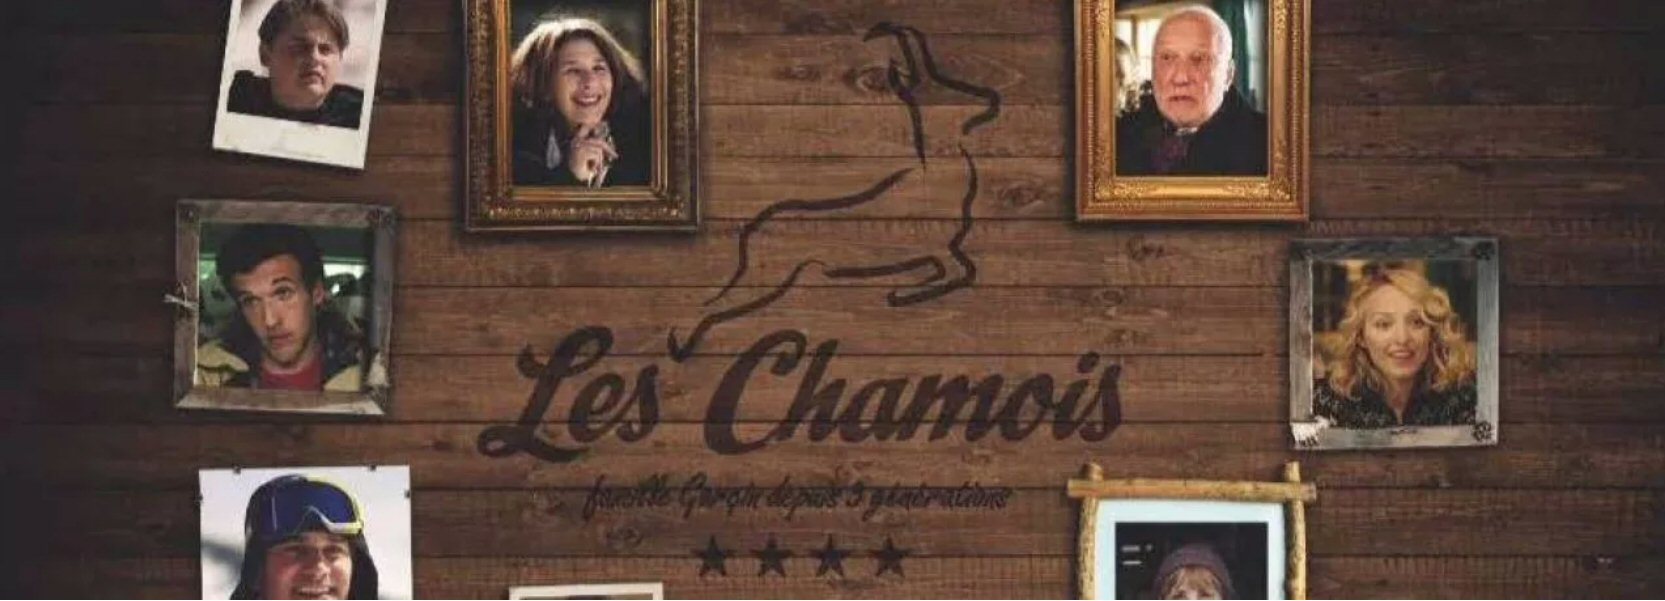 "Preview showing of ""Les Chamois"""